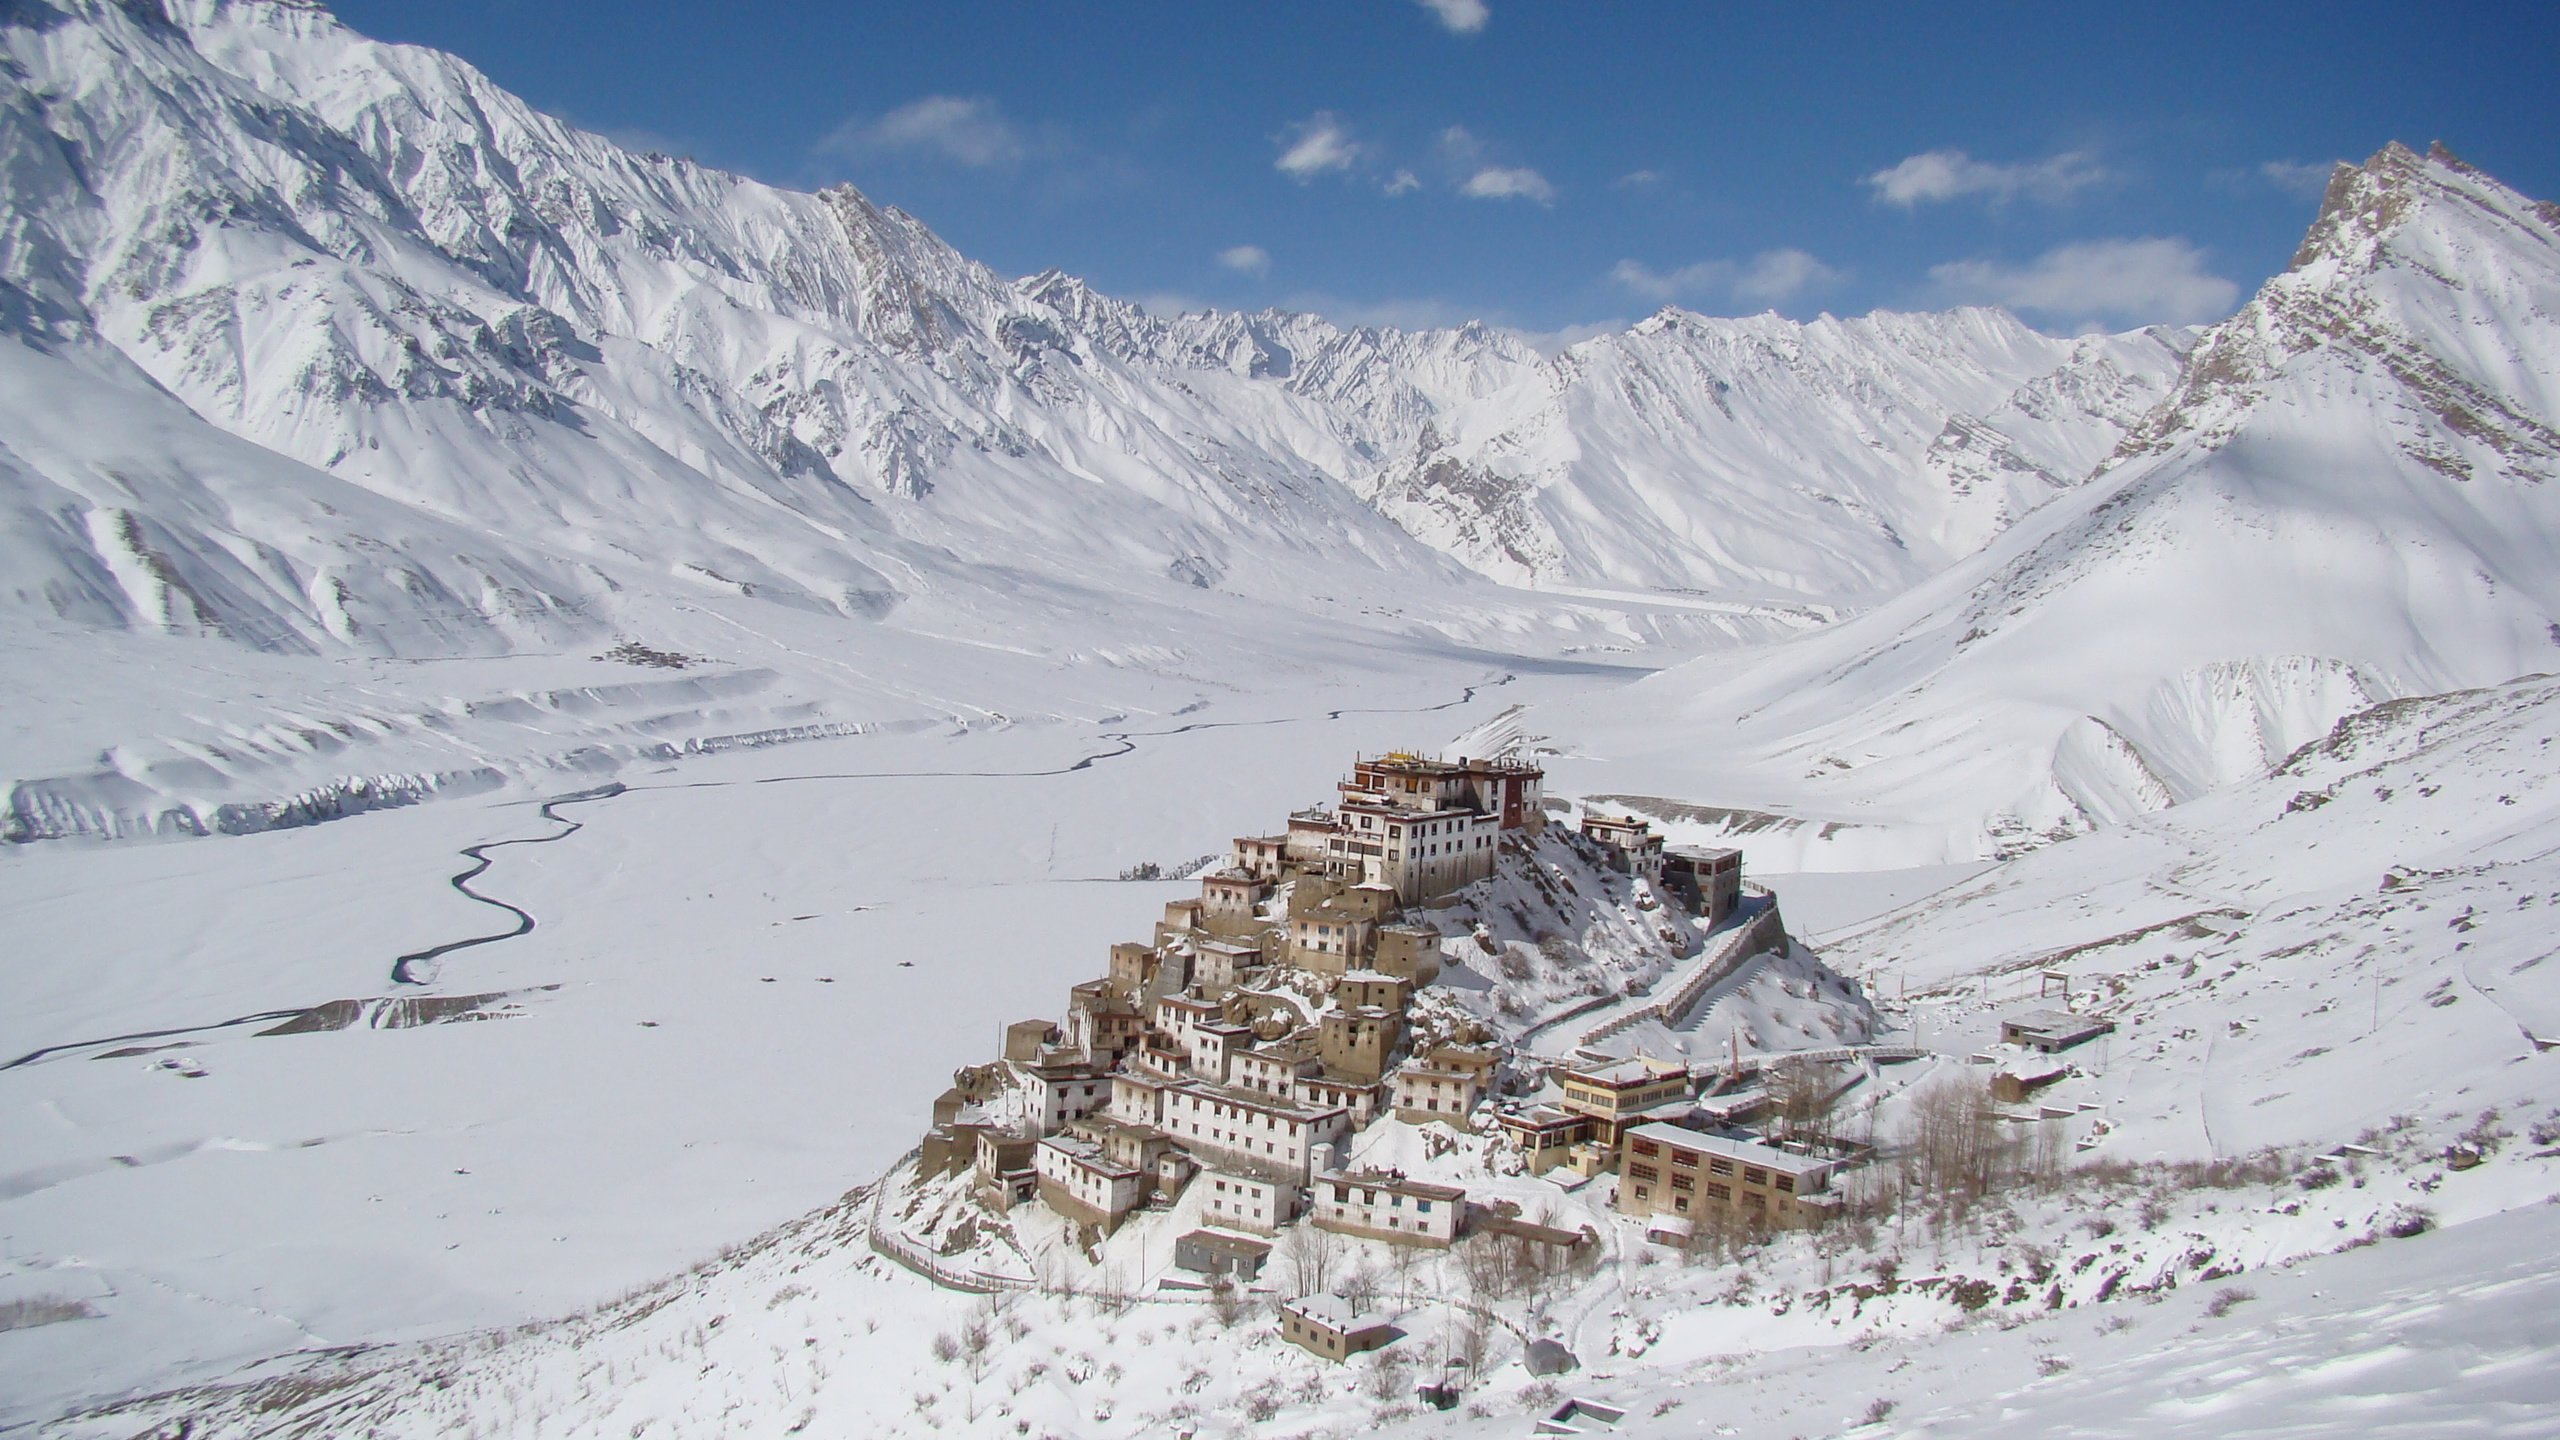 Wallpaper Hd For Iphone 5s Key Monastery Spiti Valley India Hd Wallpaper